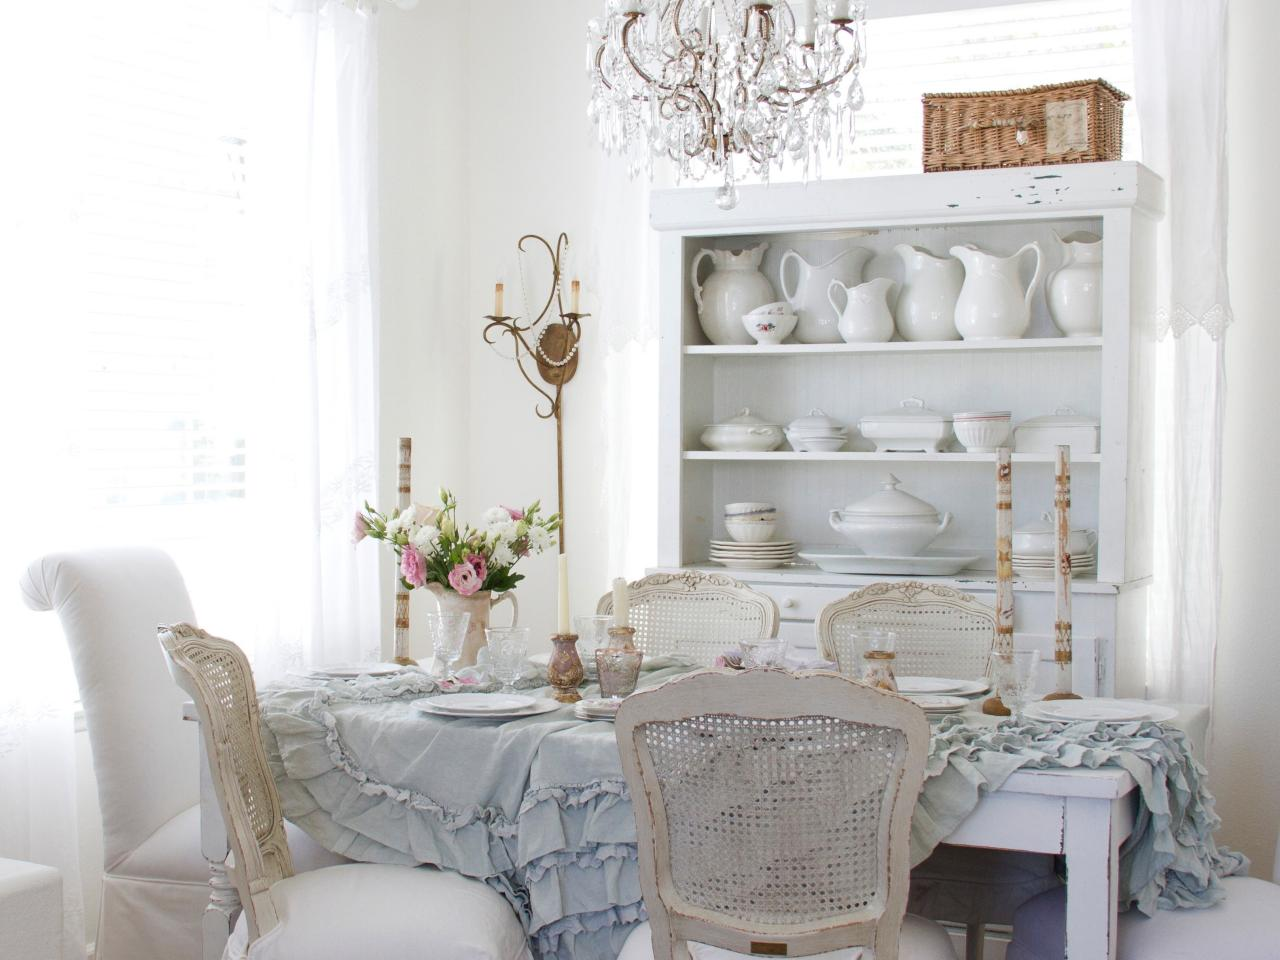 Shabby chic style hgtv - Shabby chic dining rooms ...